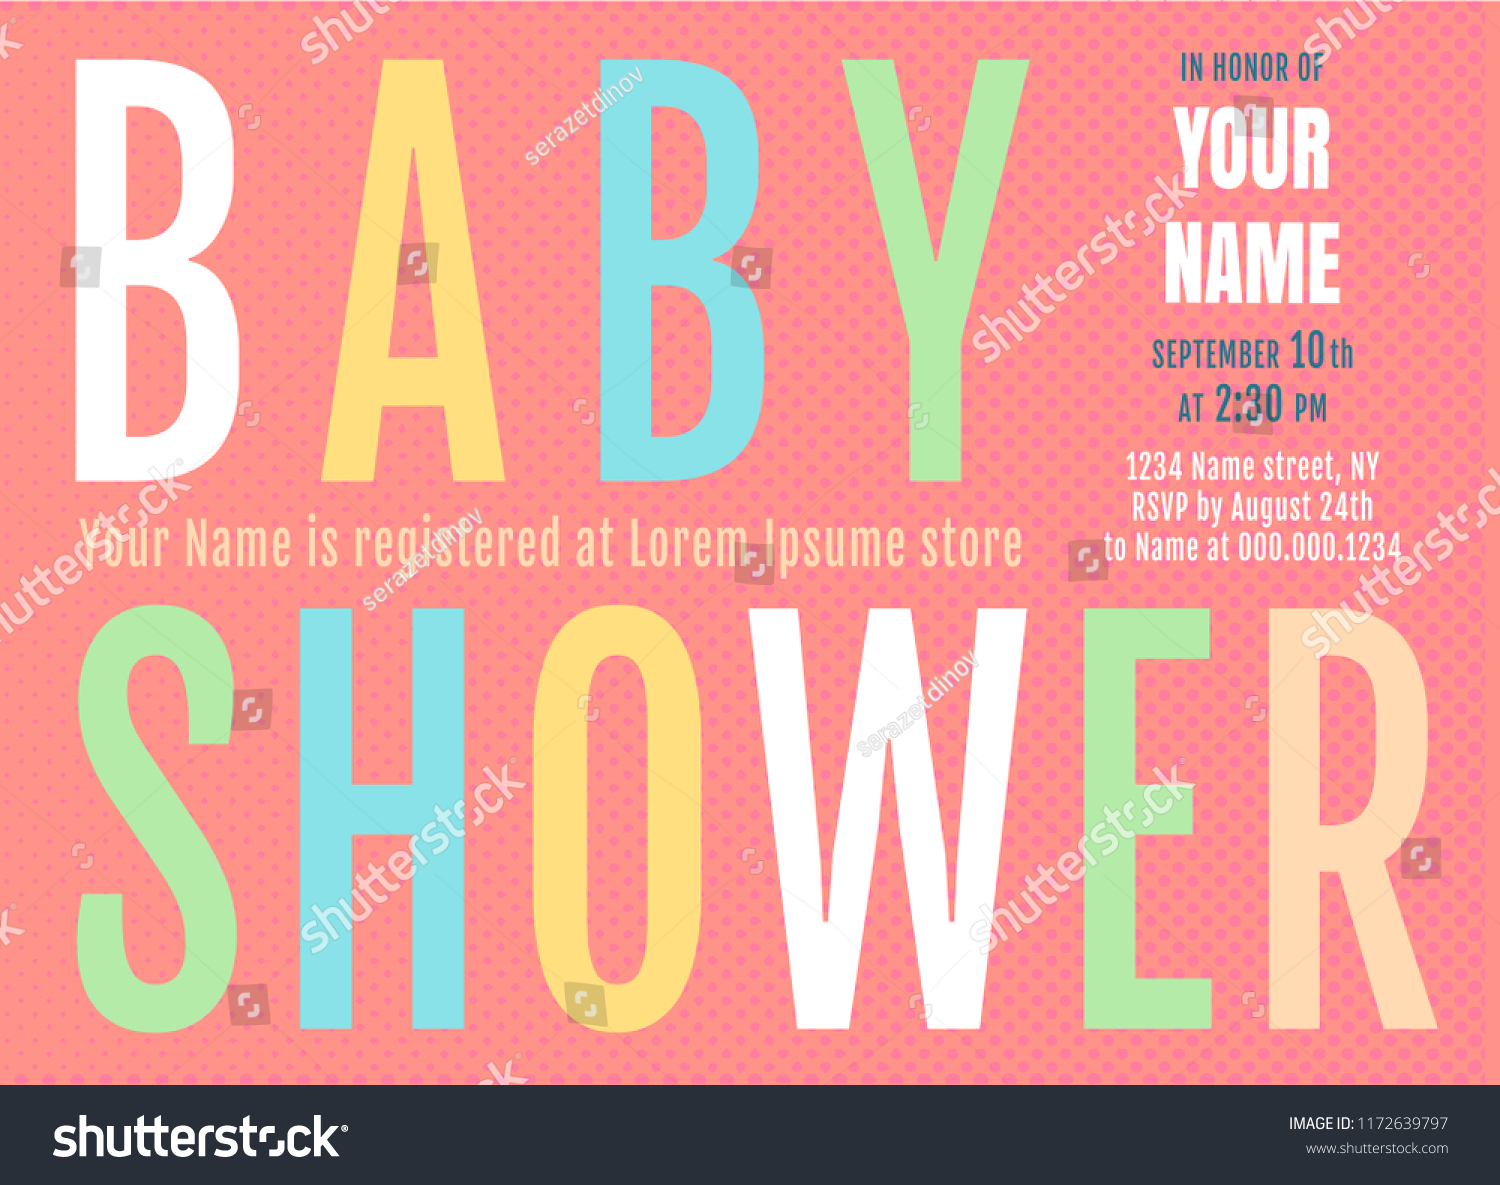 Vector Invitation Fof Baby Shower Colorful Stock Vector (Royalty ...